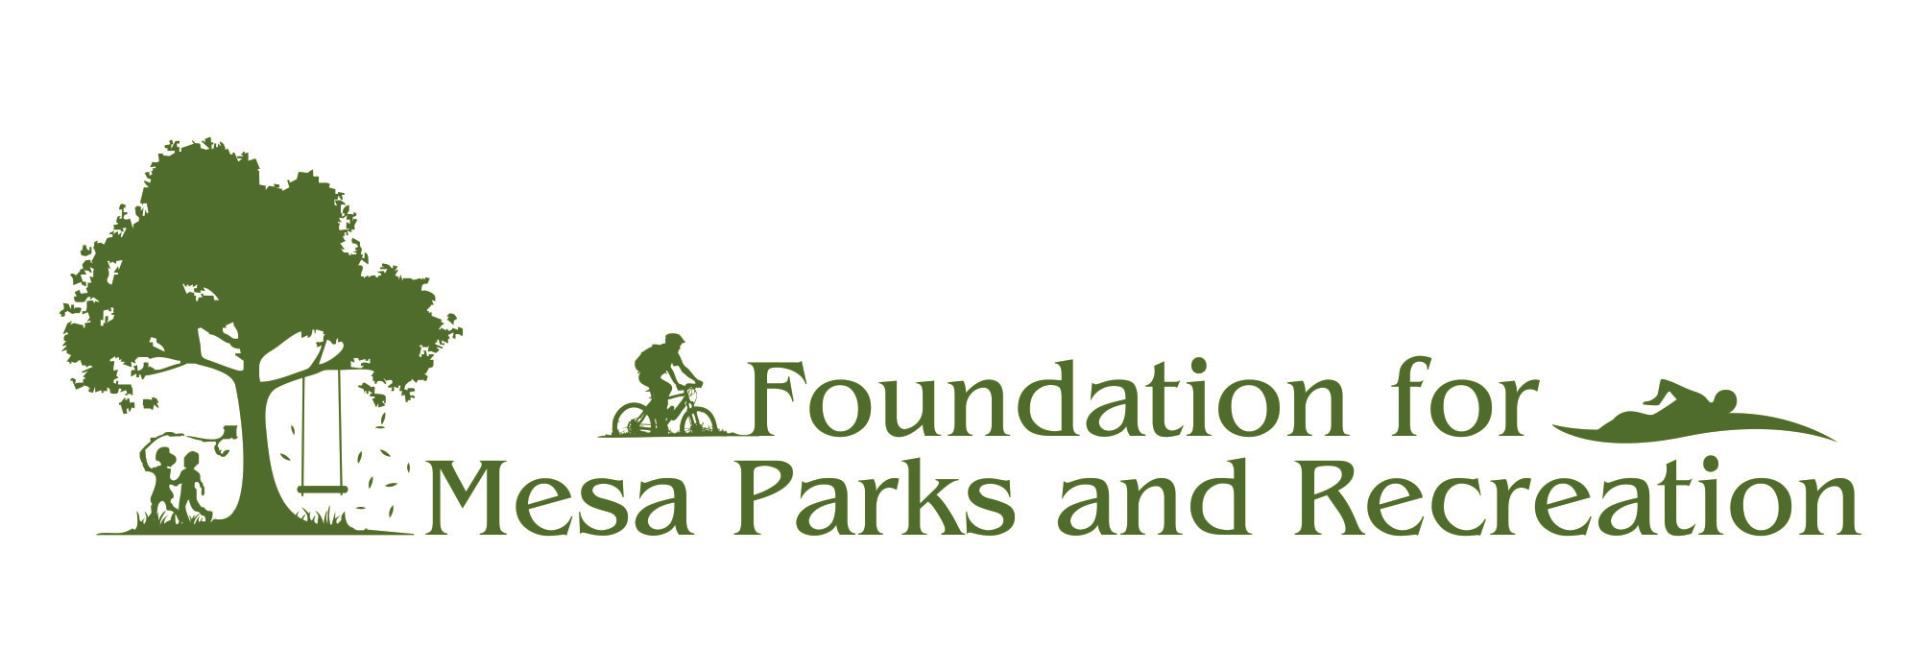 Foundation for Mesa Parks _Final_01072017 2019